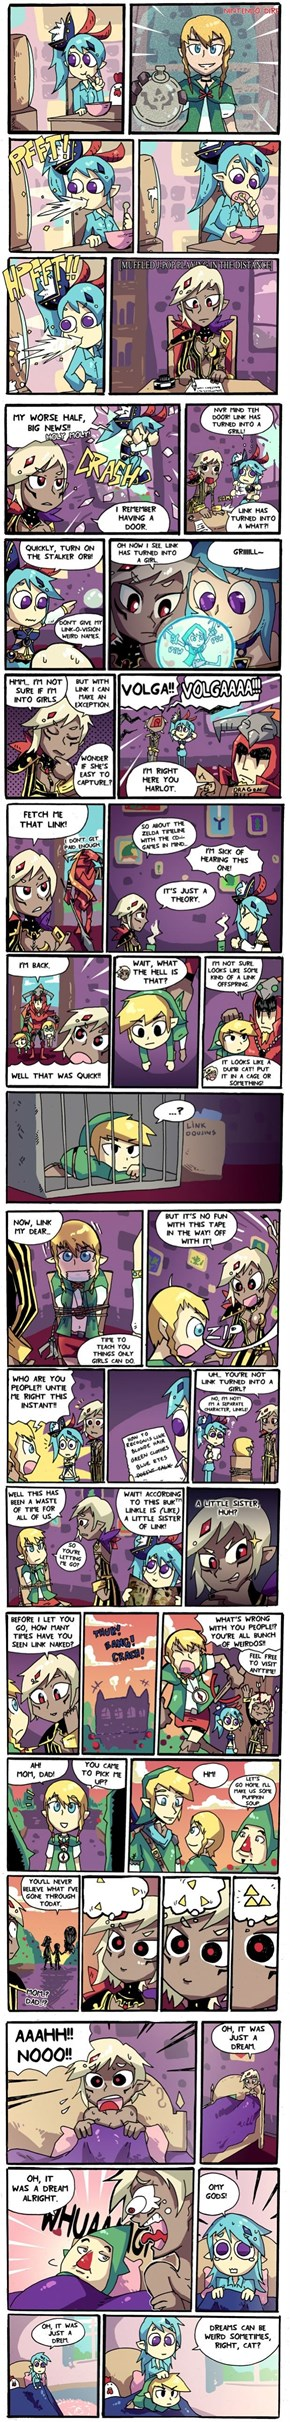 Hurl Warriors: Now with more Linkle!